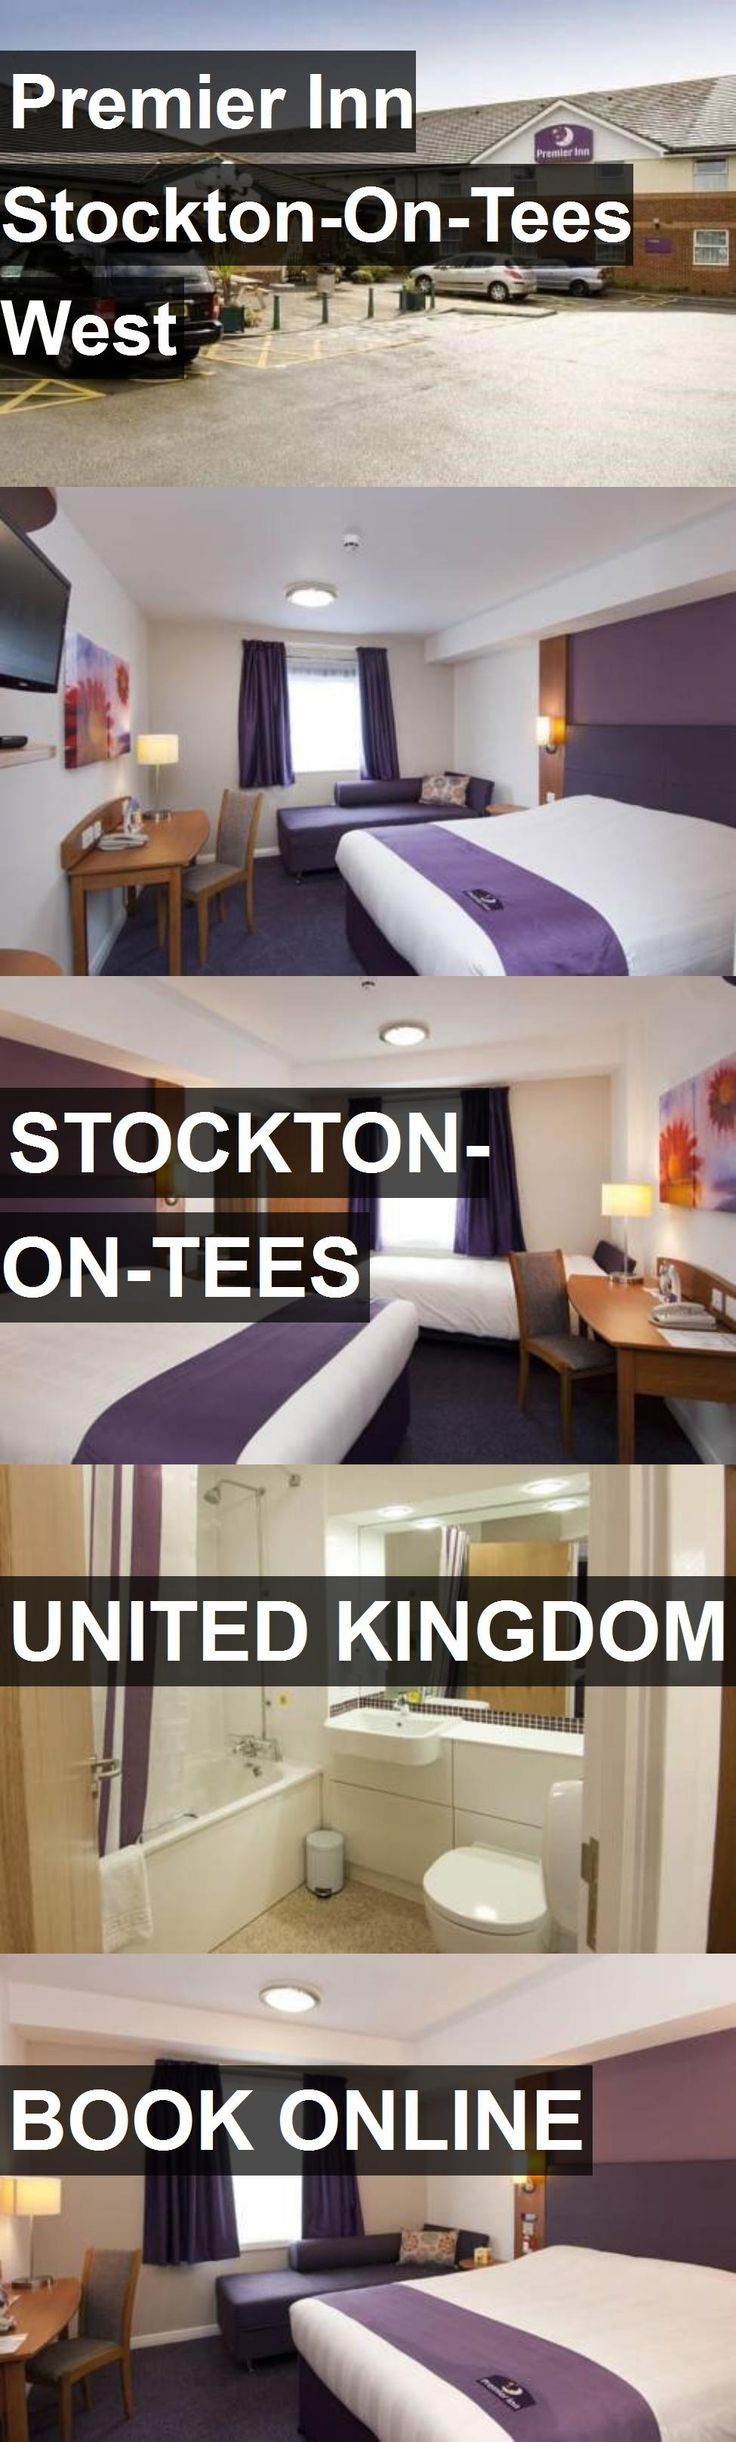 Hotel Premier Inn Stockton-On-Tees West in Stockton-on-Tees, United Kingdom. For more information, photos, reviews and best prices please follow the link. #UnitedKingdom #Stockton-on-Tees #travel #vacation #hotel